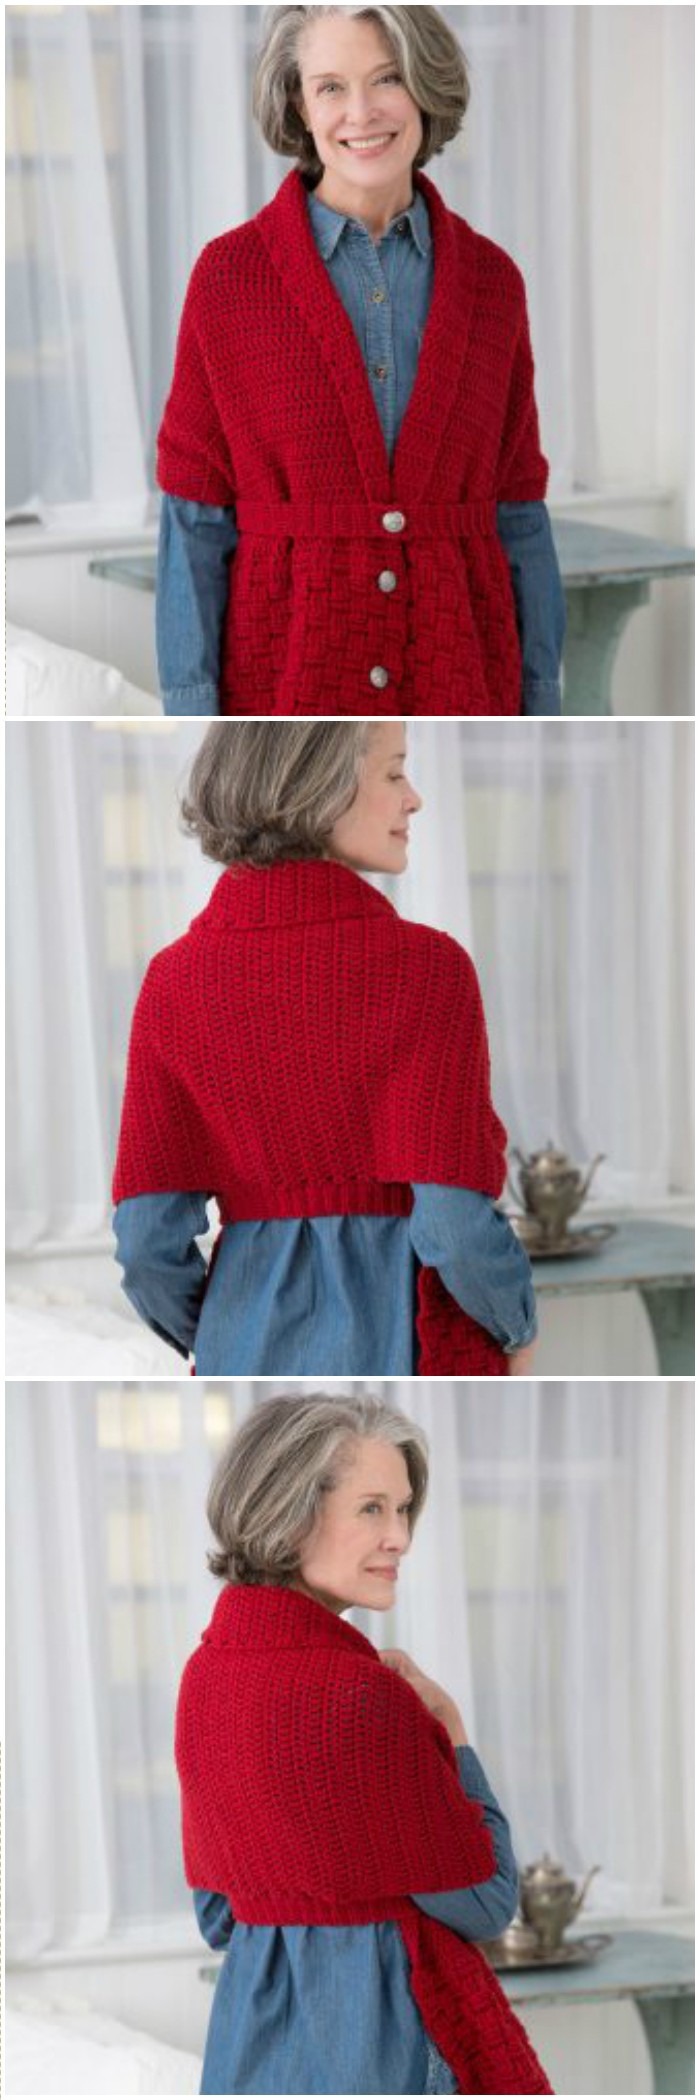 Best Of Free Crochet Sweater Patterns Free Crochet Patterns• Diy Red Heart Sweater Of Fresh Free Pattern Summer Night Sweater In Red Heart soft Red Heart Sweater